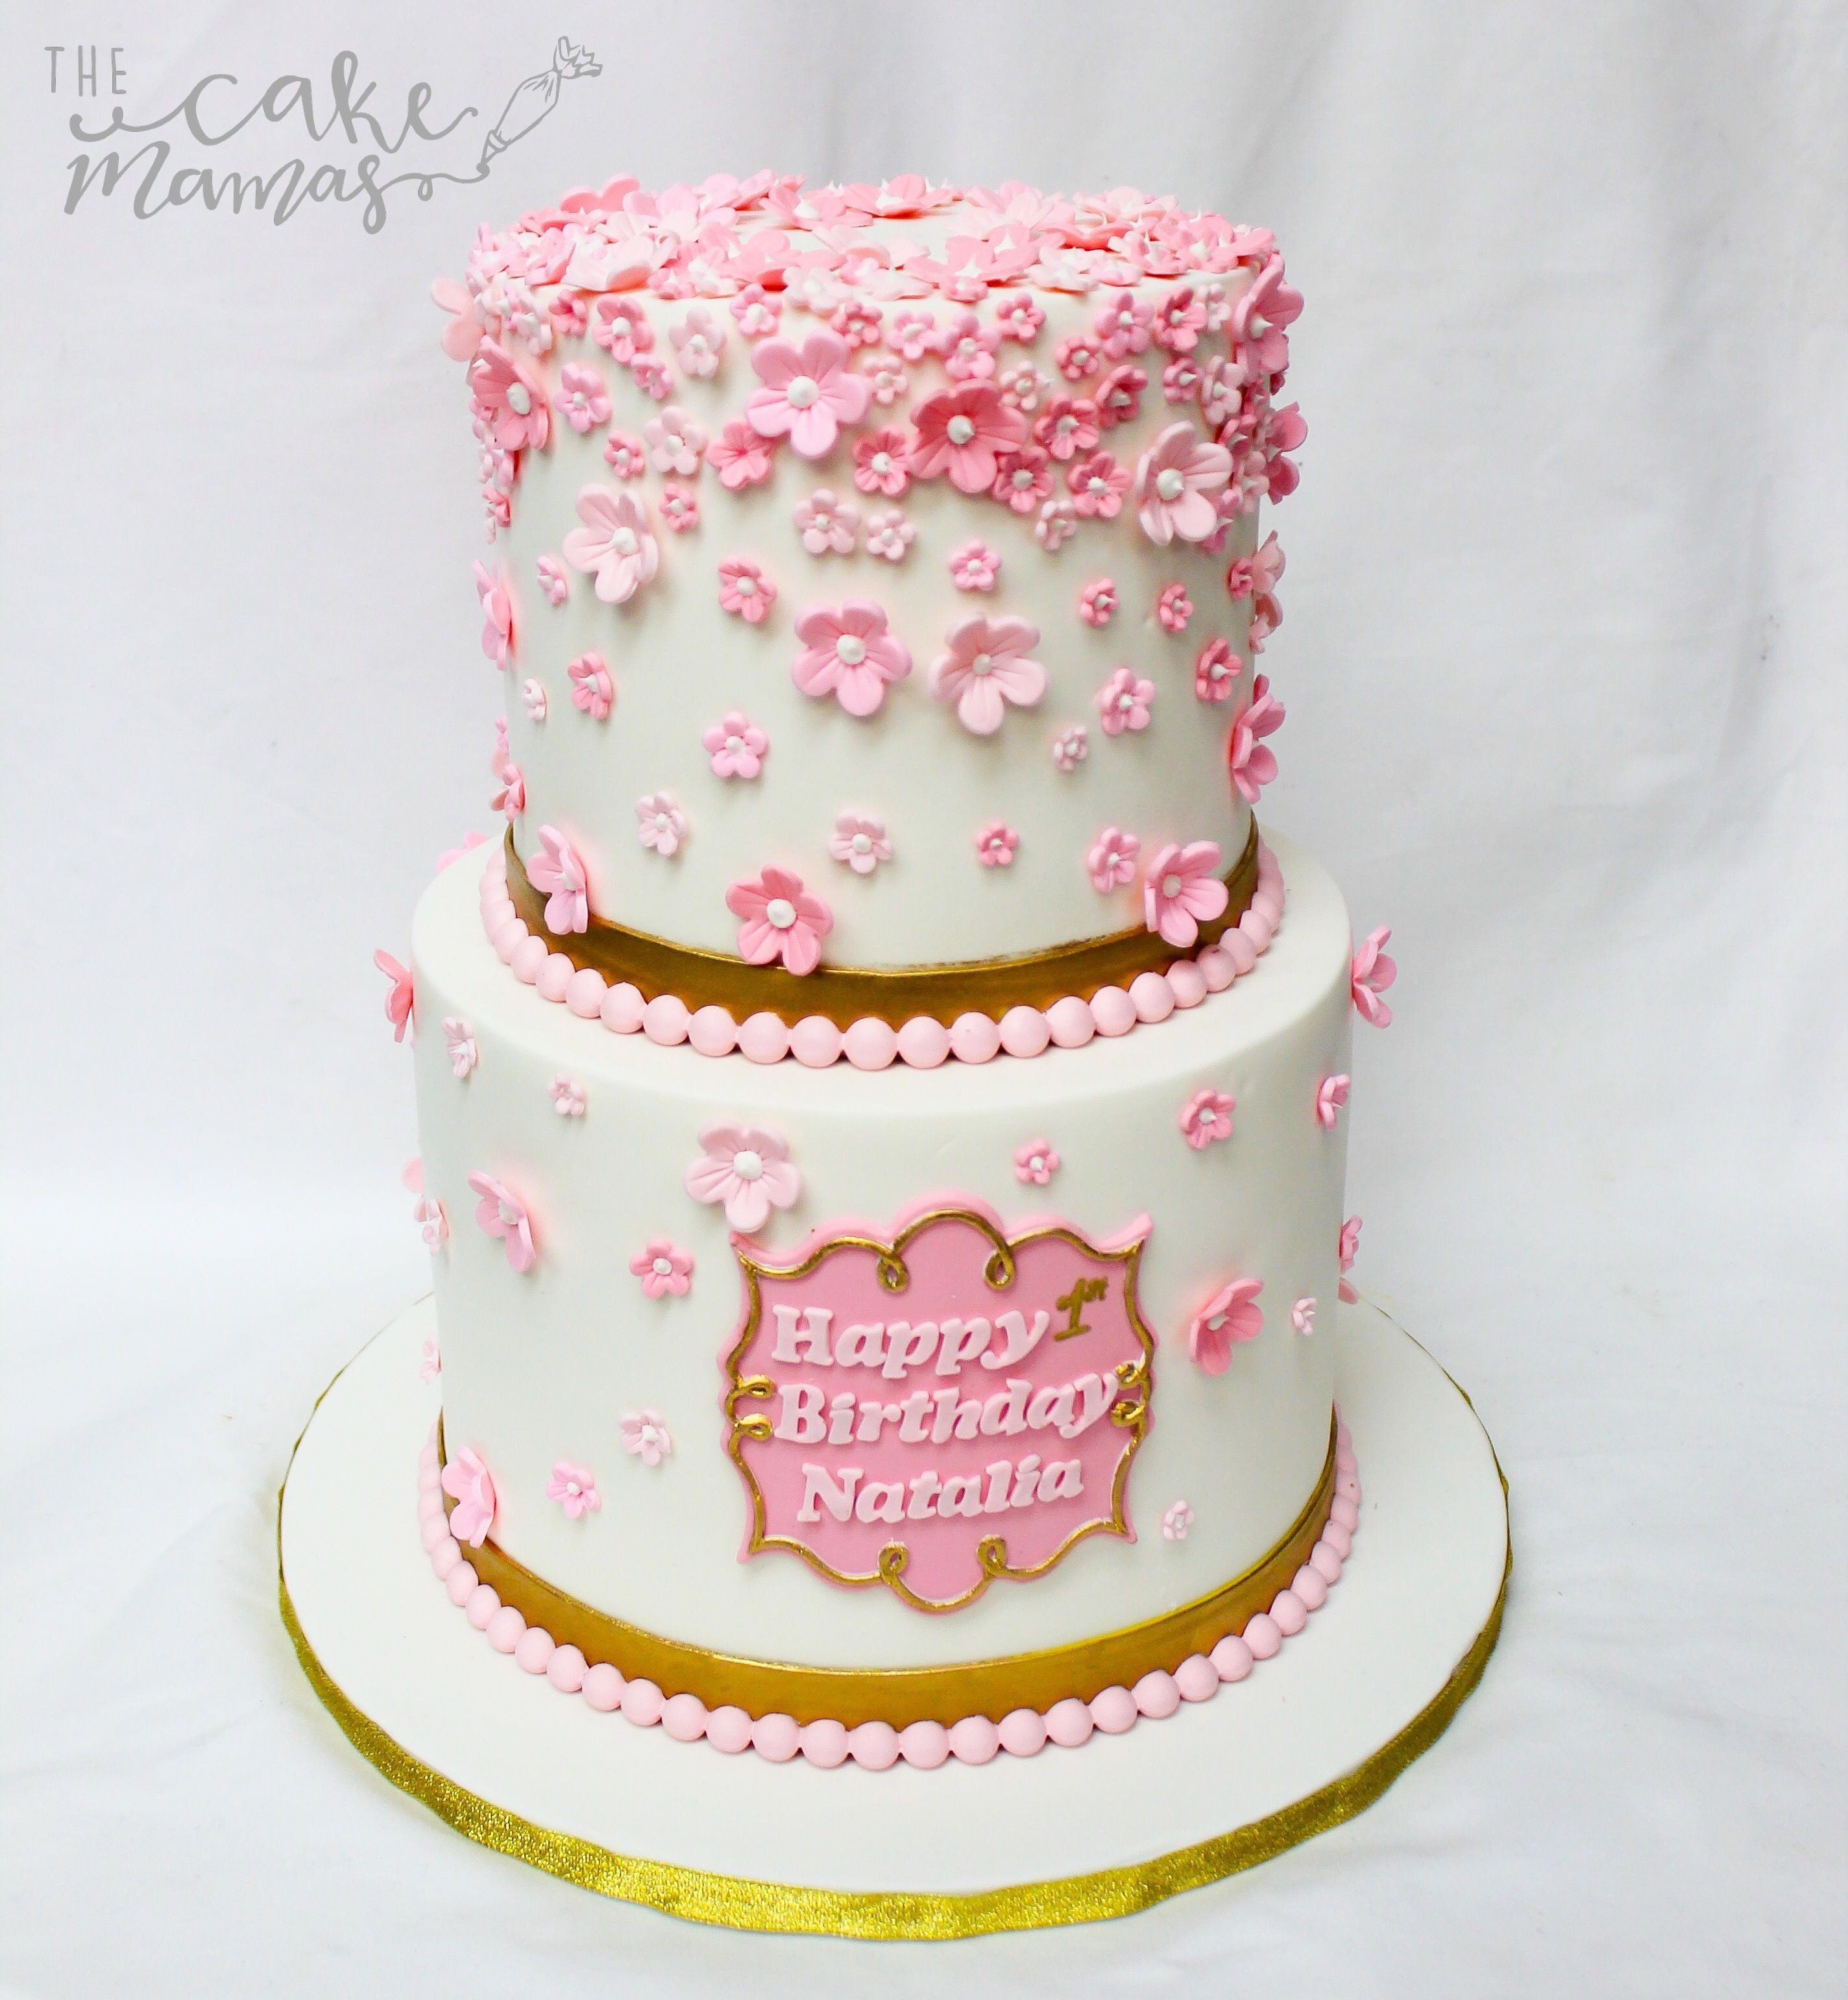 Floral Birthday Cake! Call Or Email To Book Your Birthday